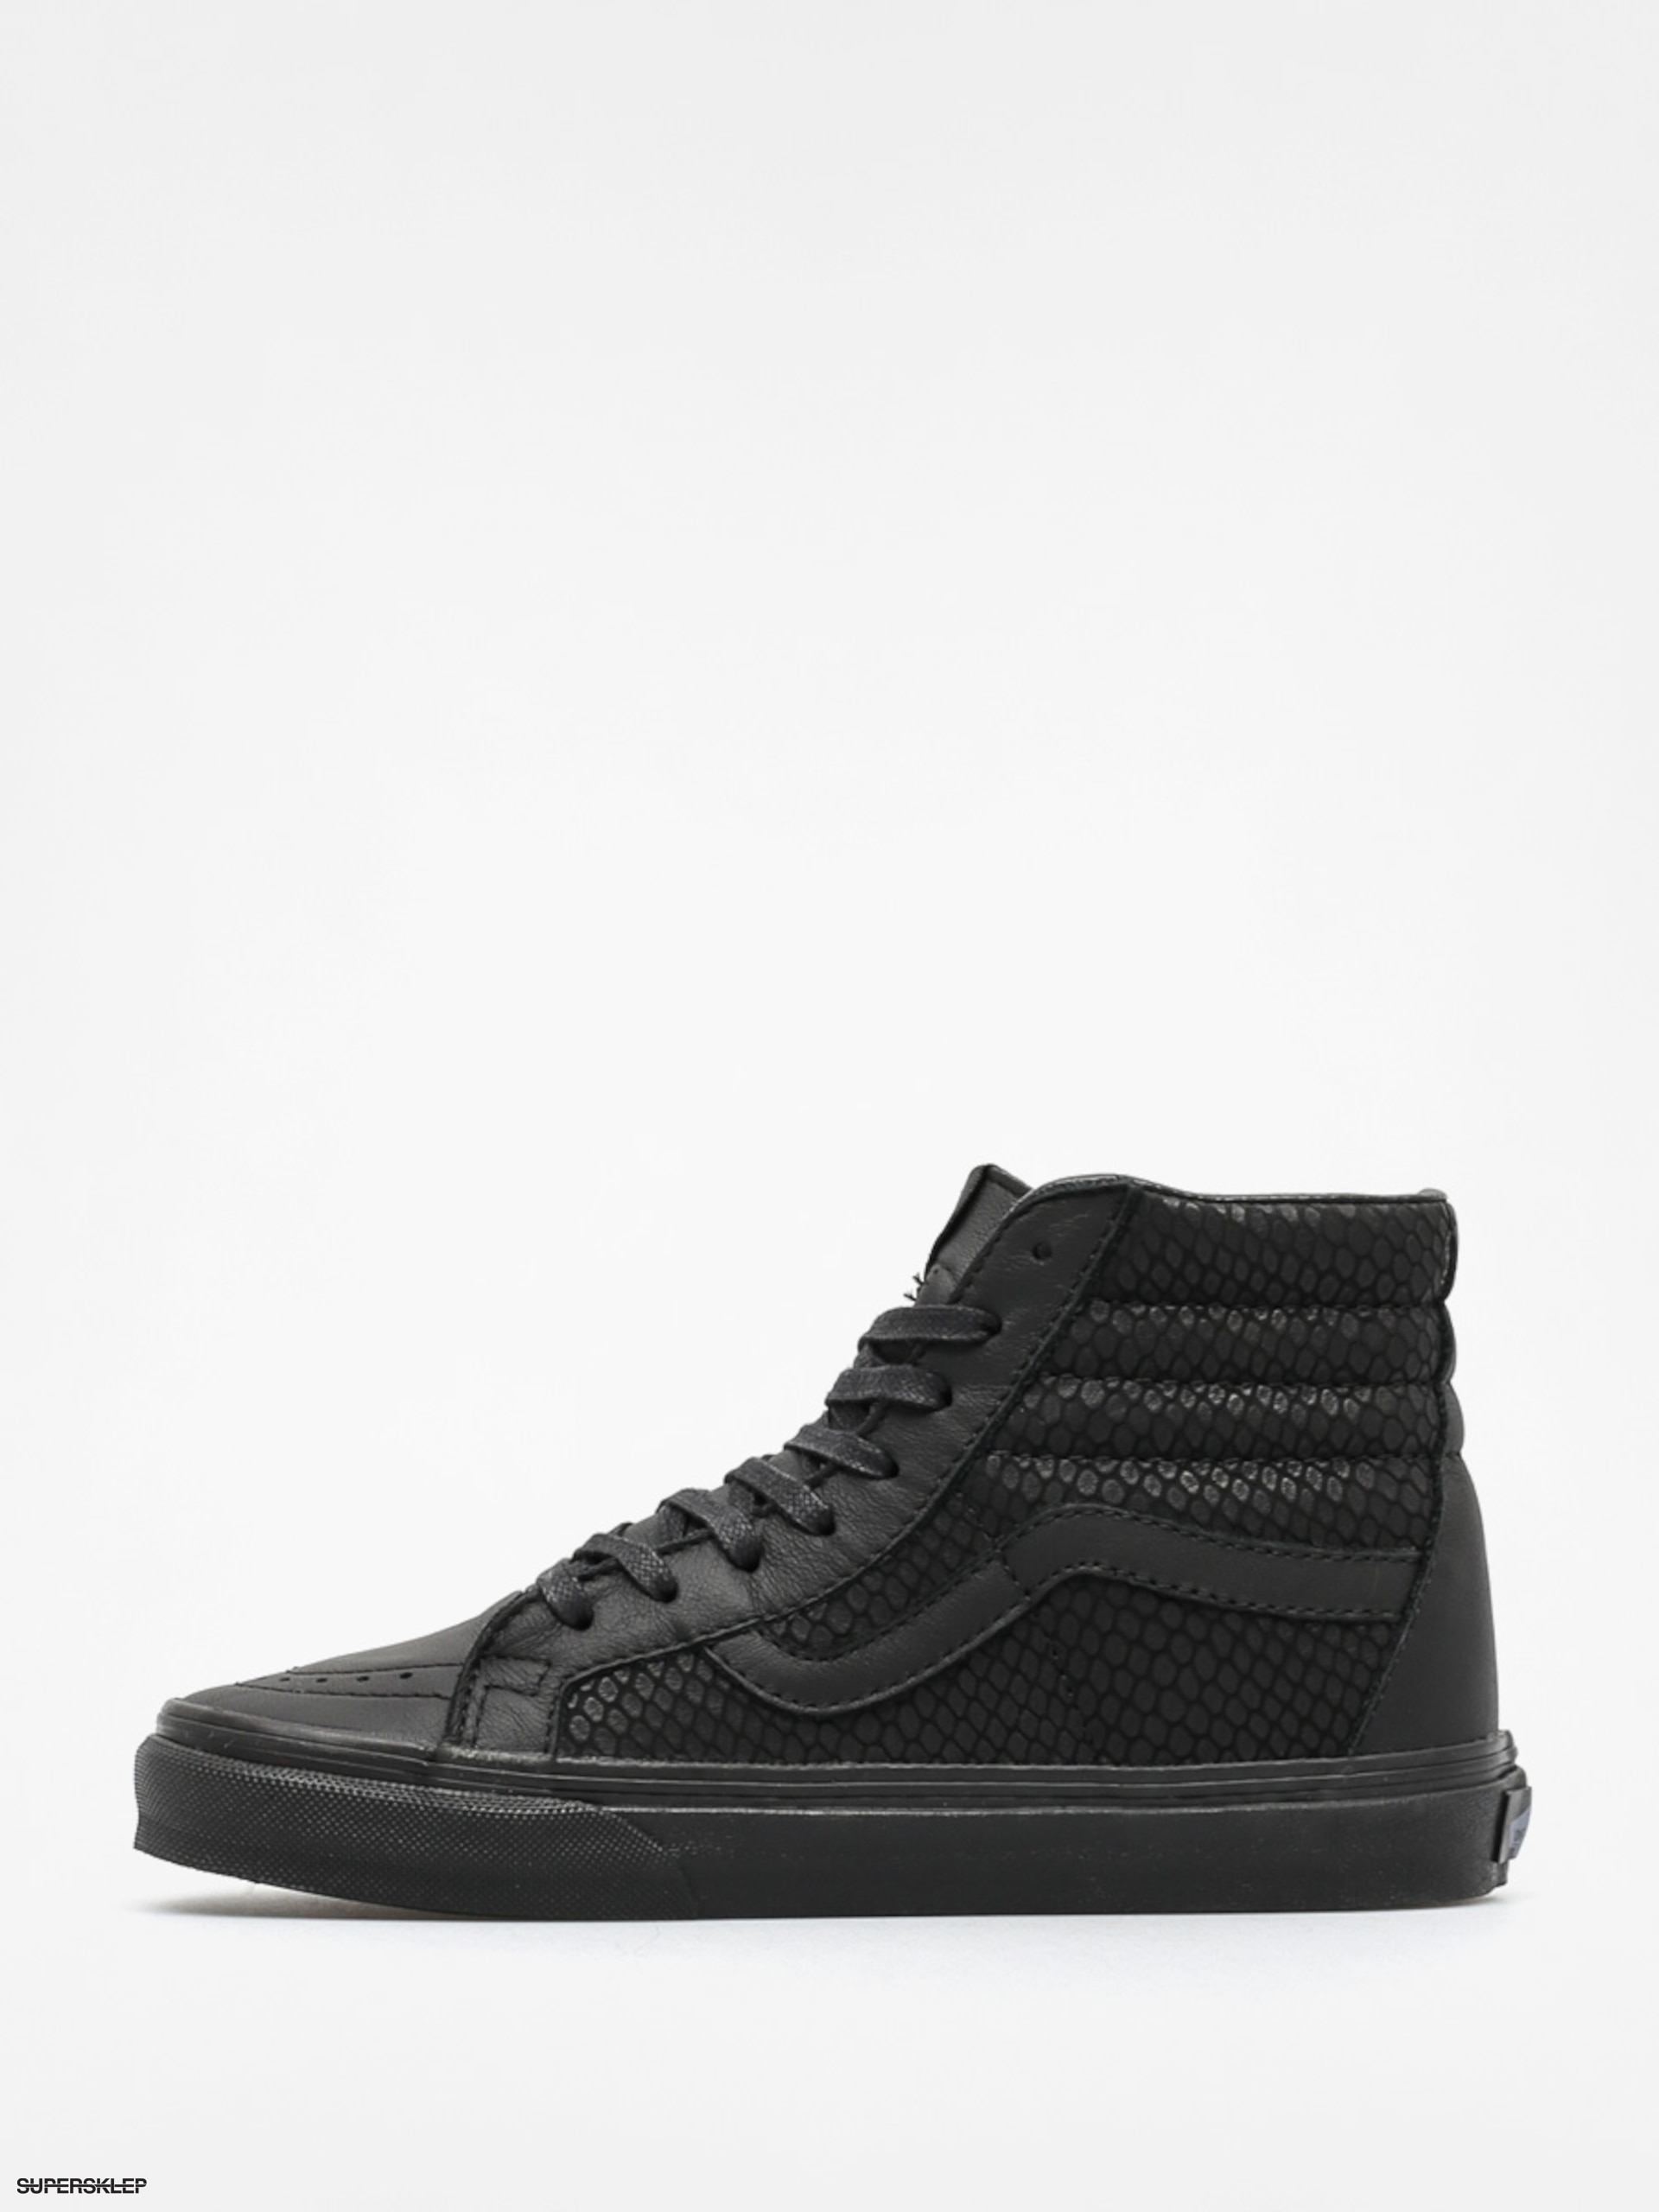 Vans Boty Sk8 Hi Reissue + (snake leather black) 85e07279be2